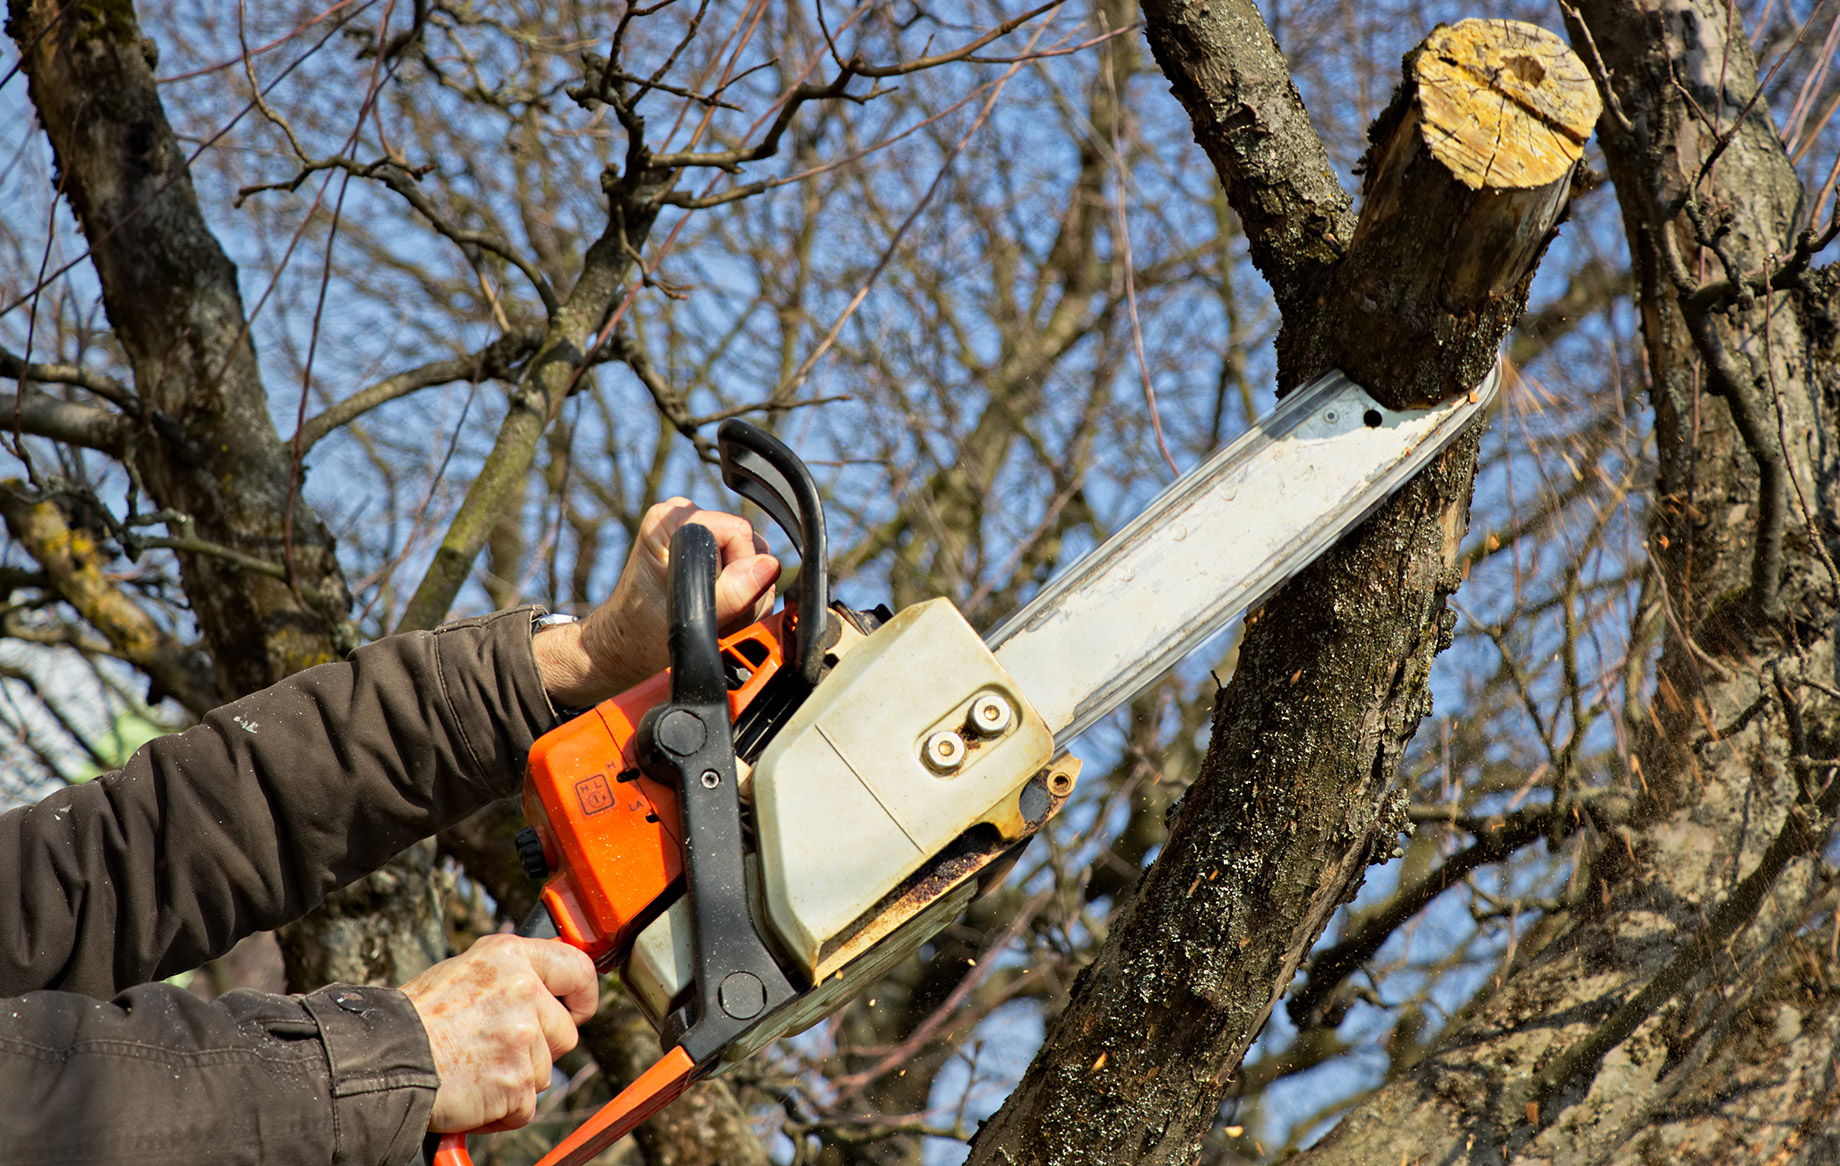 Arborists, Tree Care Experts, And Gardeners